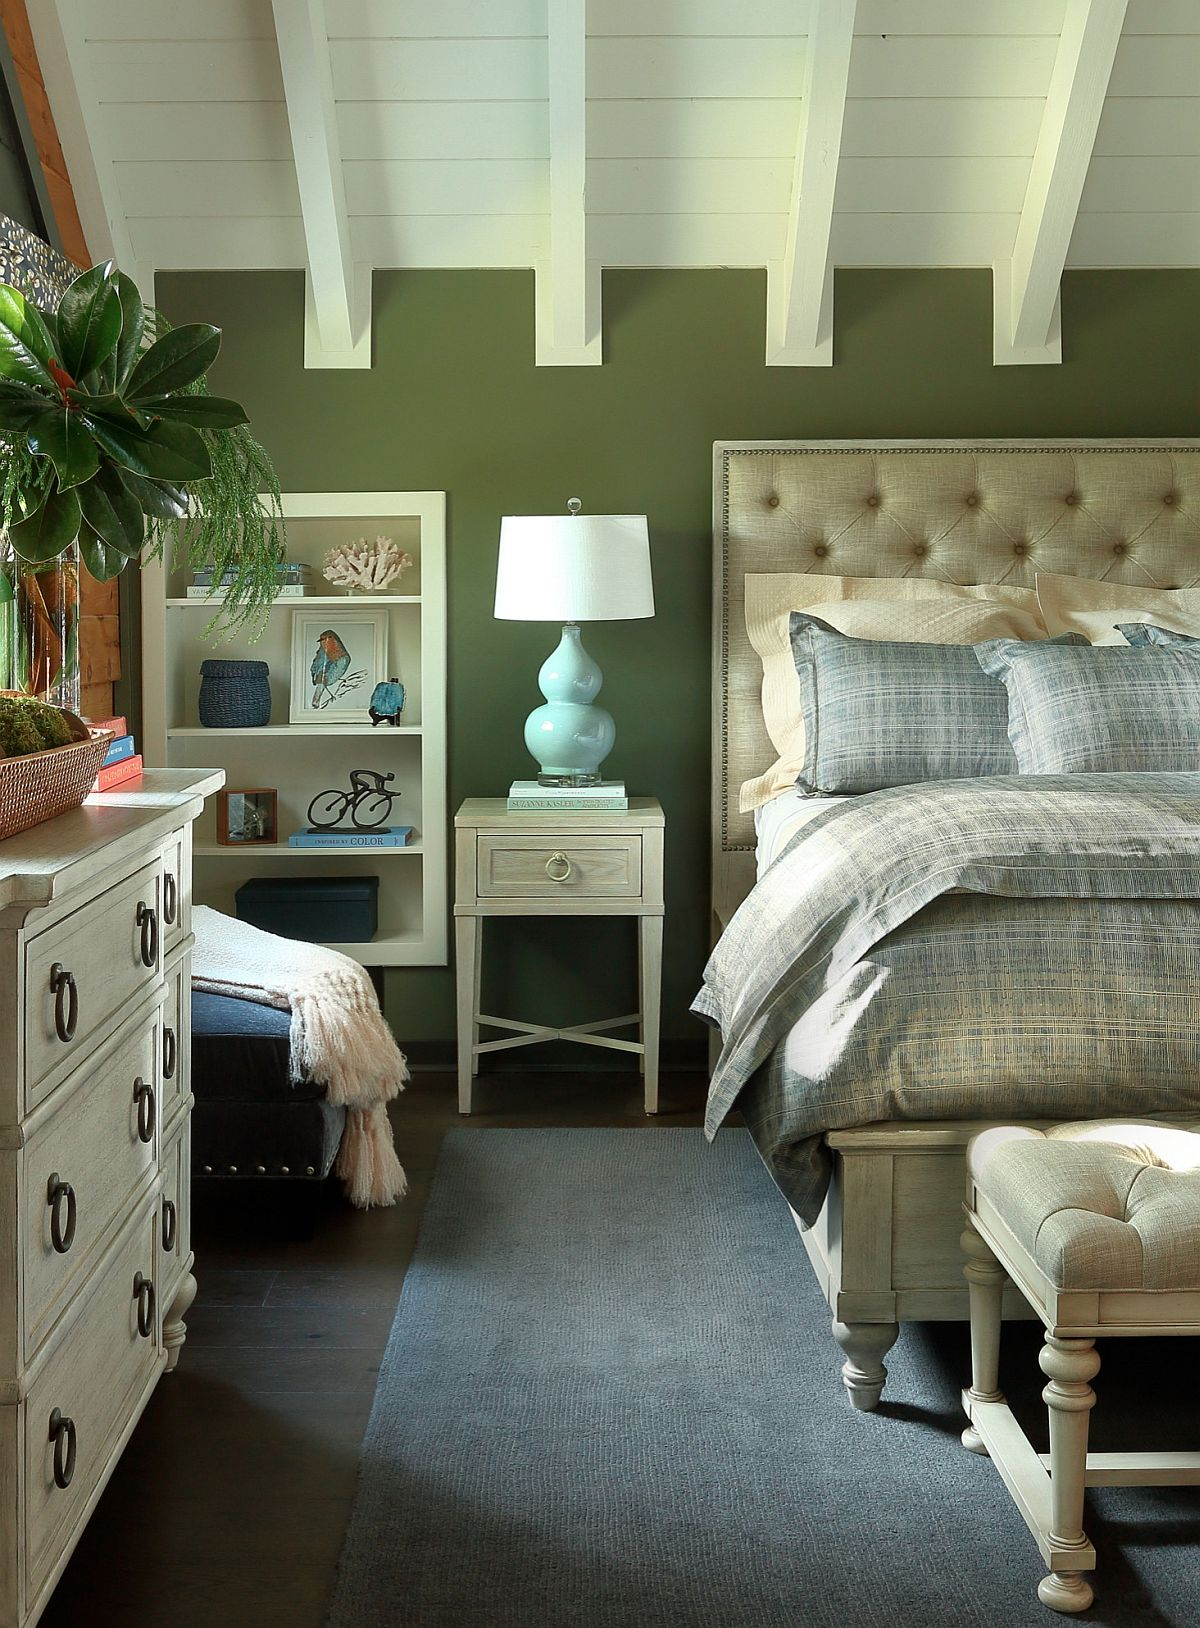 Traditional bedroom in green and cream puts your nerves at ease